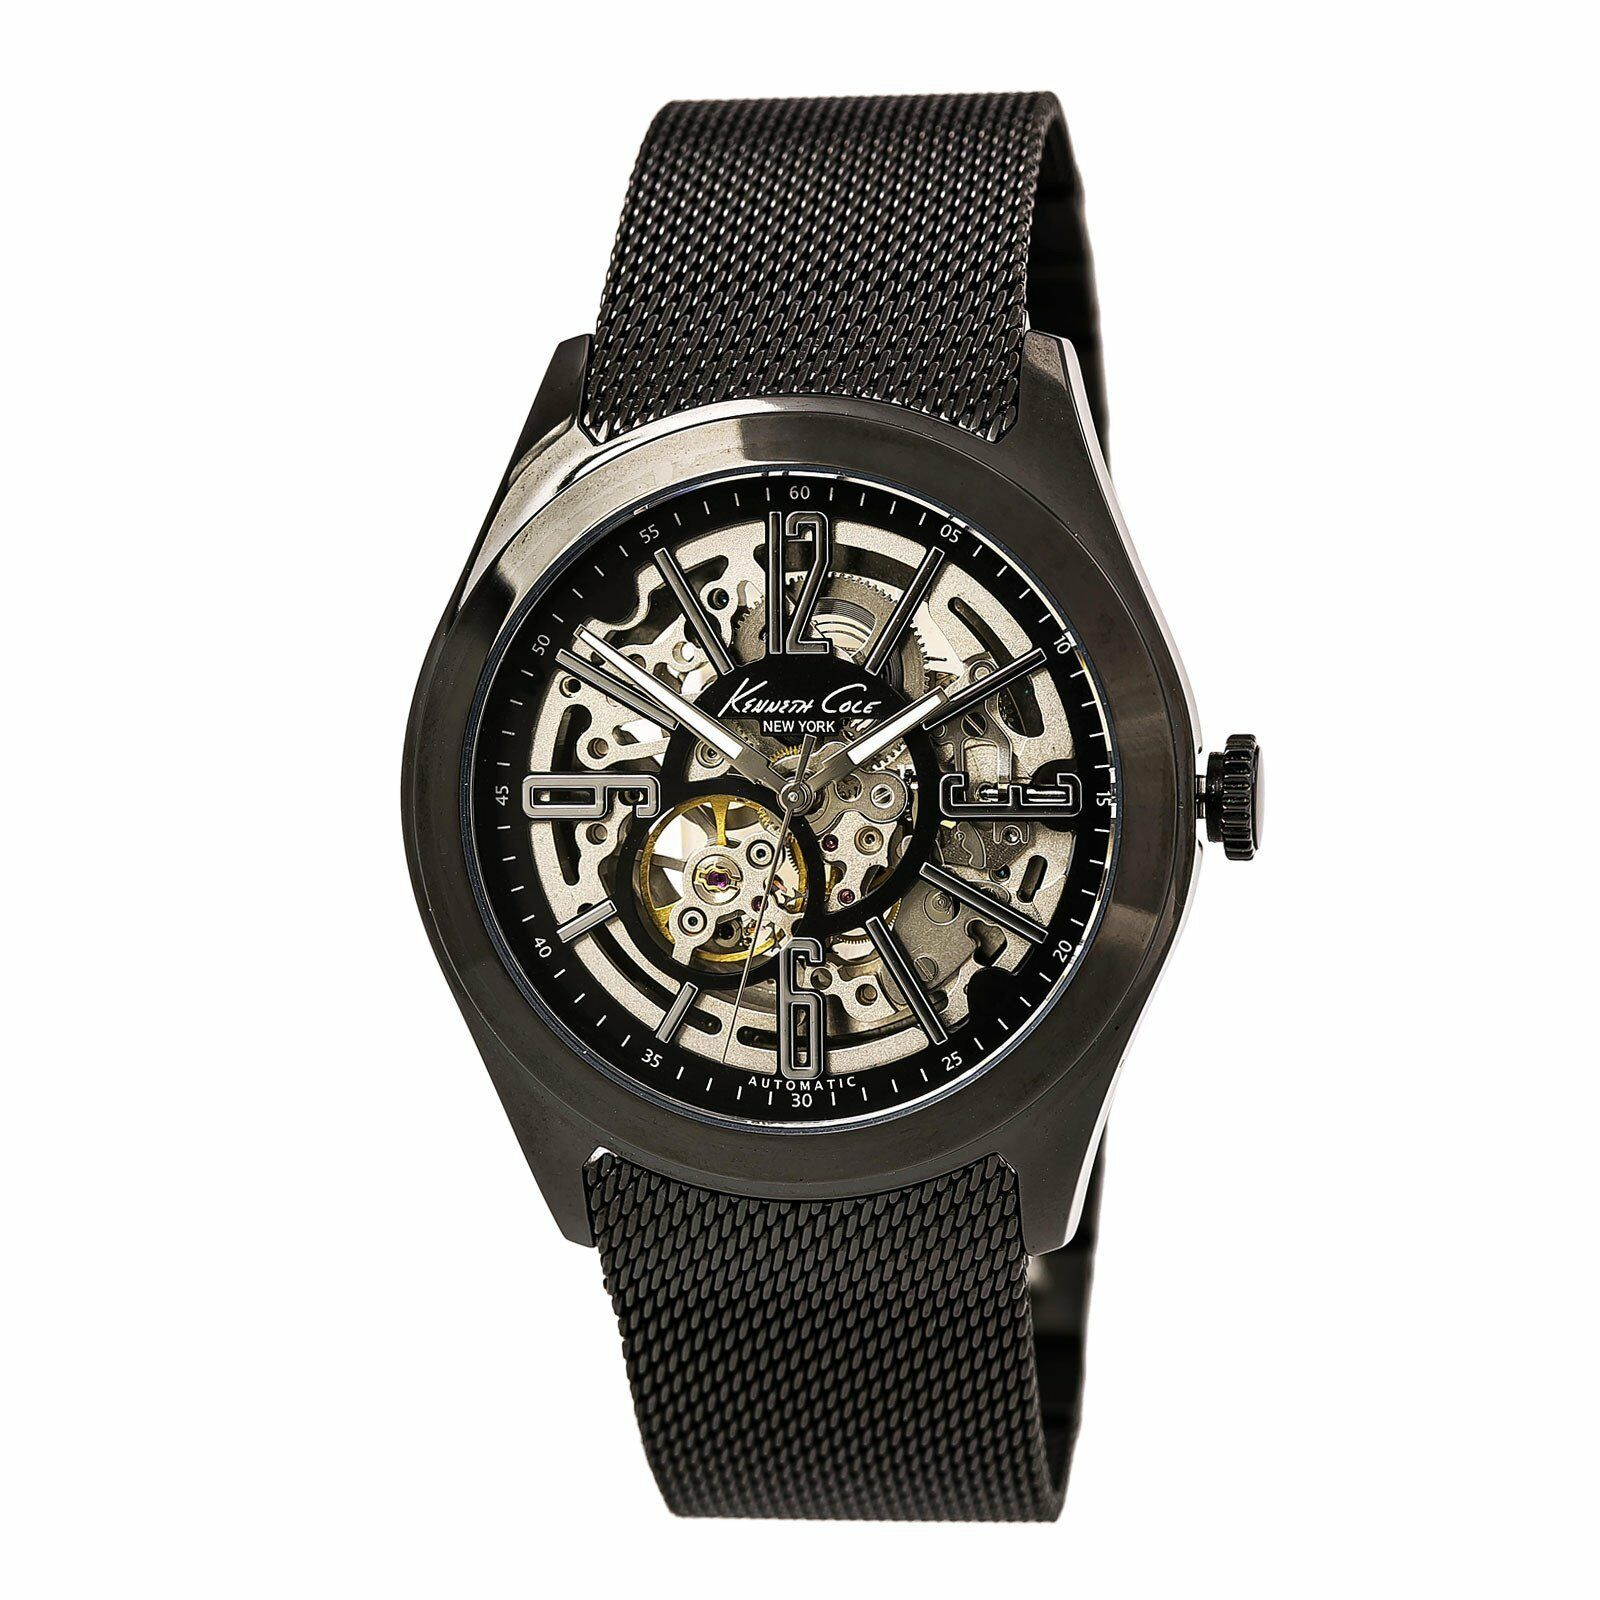 a587282b051 New Kenneth Cole Stainless Steel KC9100 Wrist Watch for Mens Motion. 21- jewel